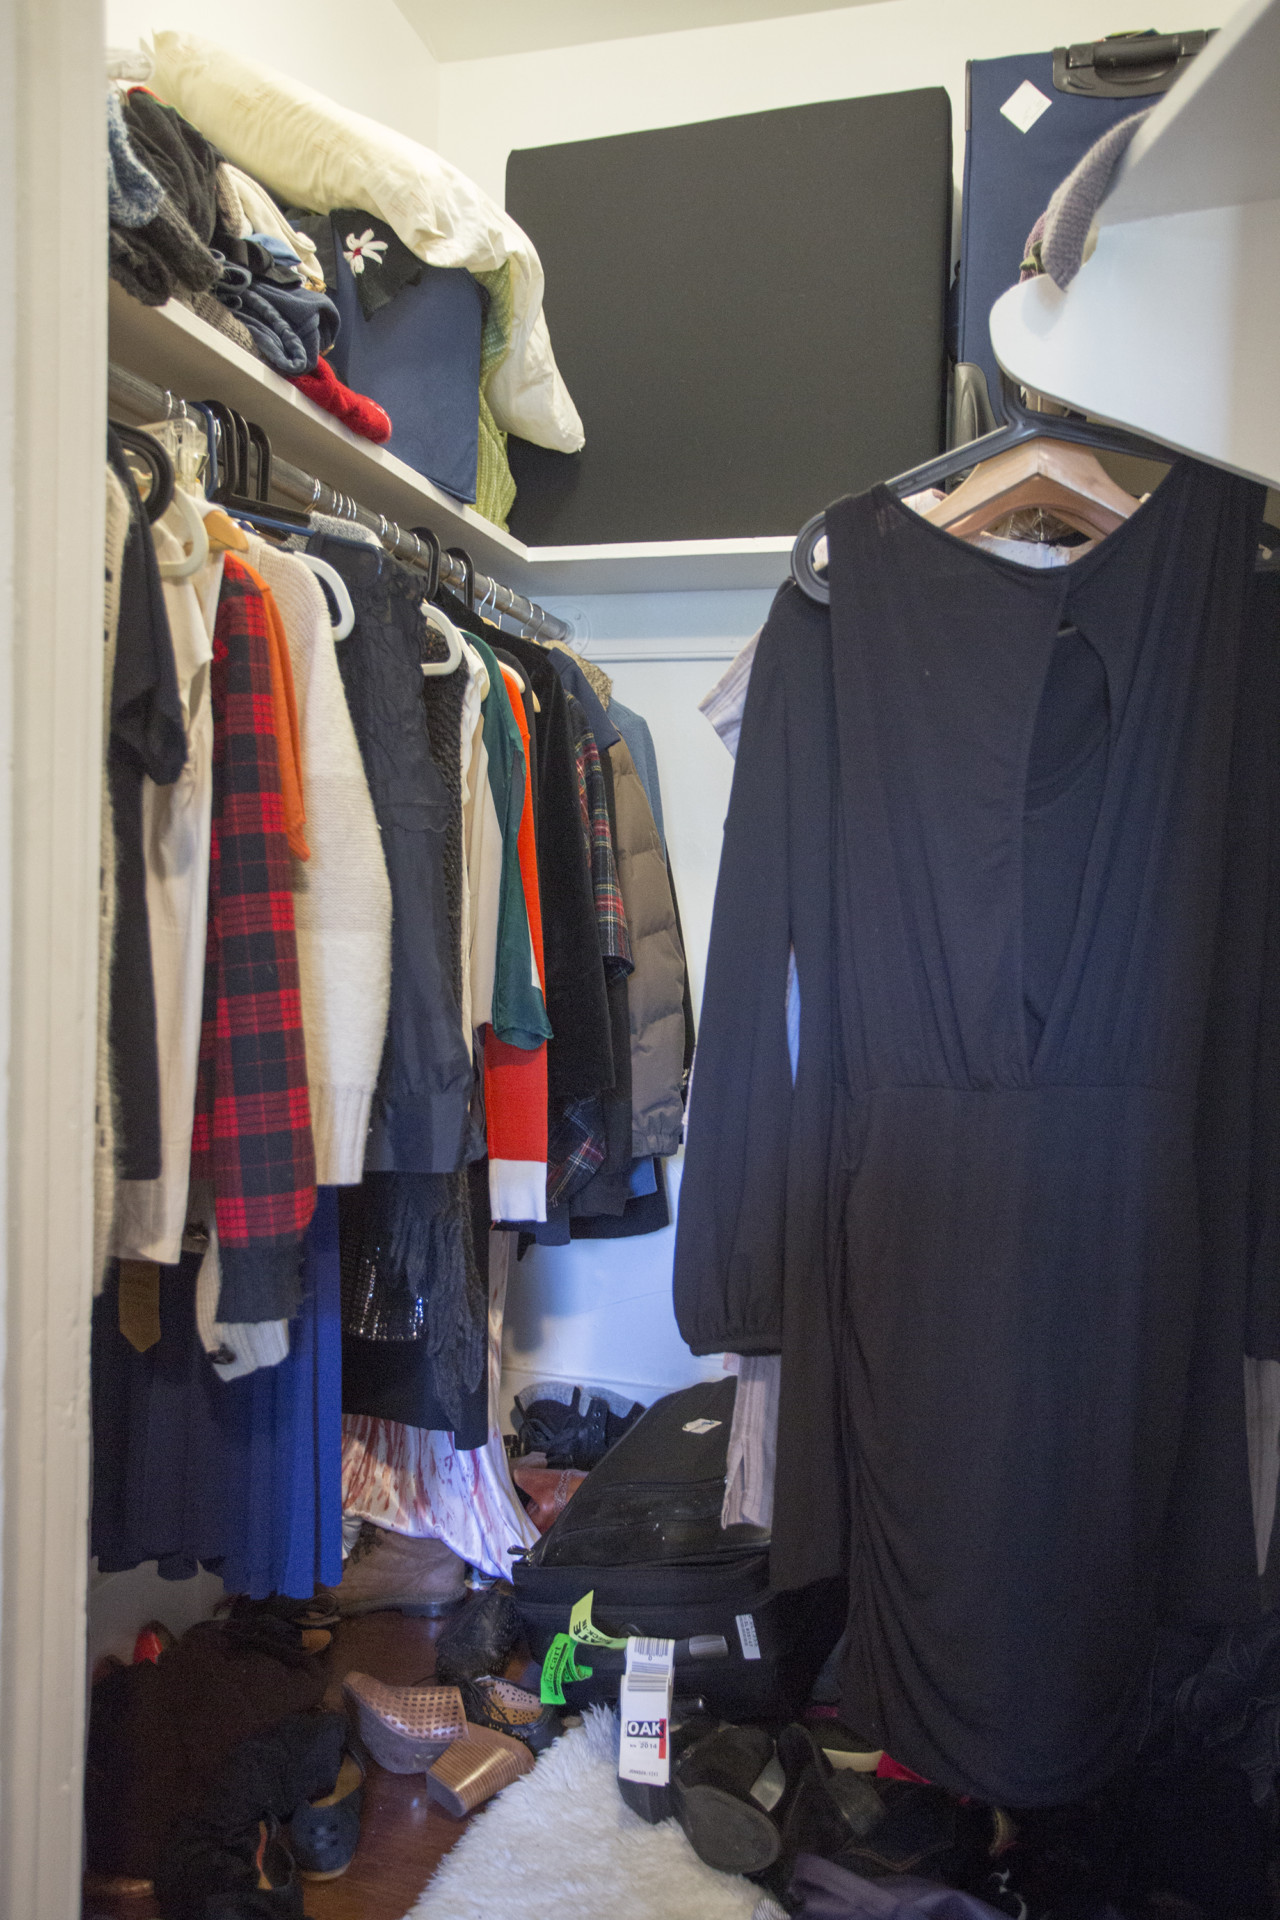 Does your closet look like this? Organize it with my simple steps!